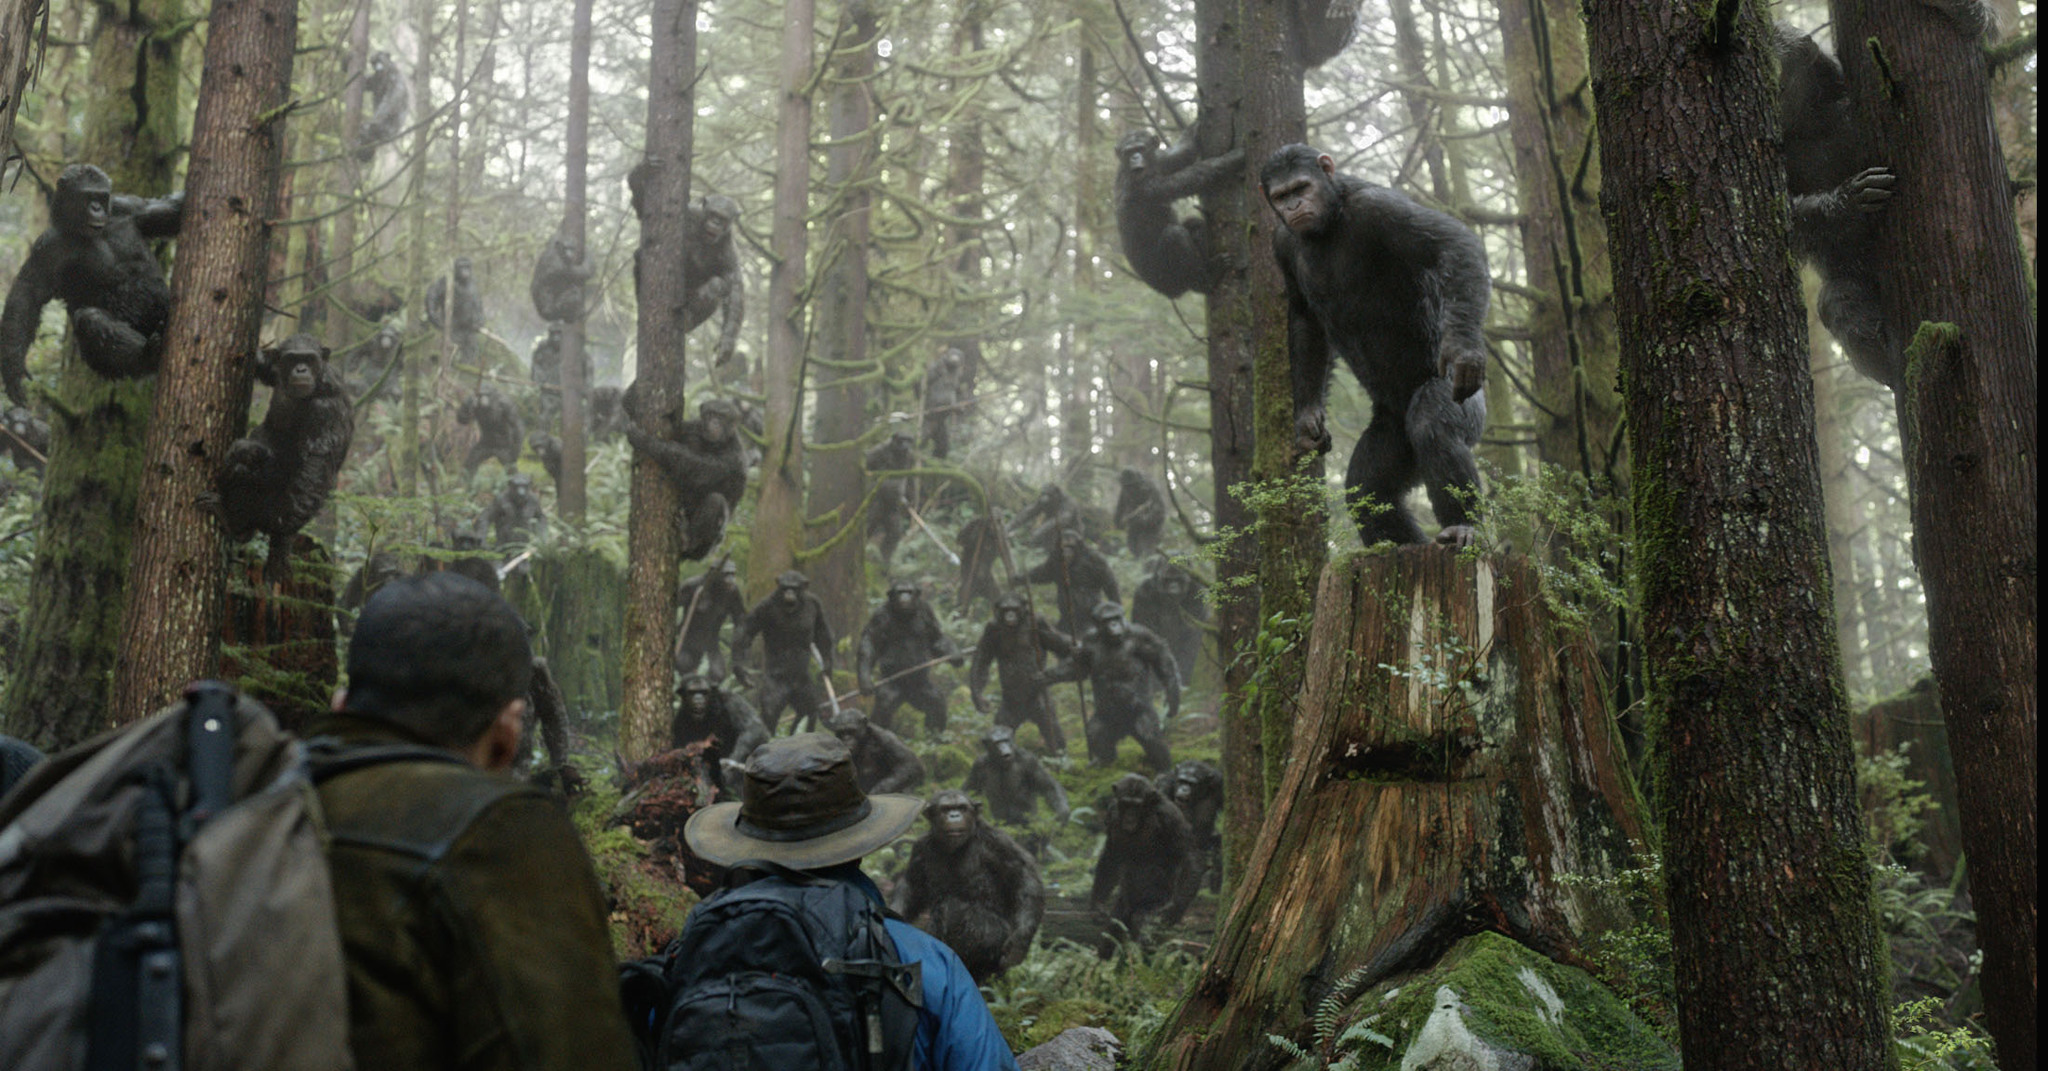 Enrique Murciano, Jason Clarke, and Andy Serkis in Dawn of the Planet of the Apes (2014)